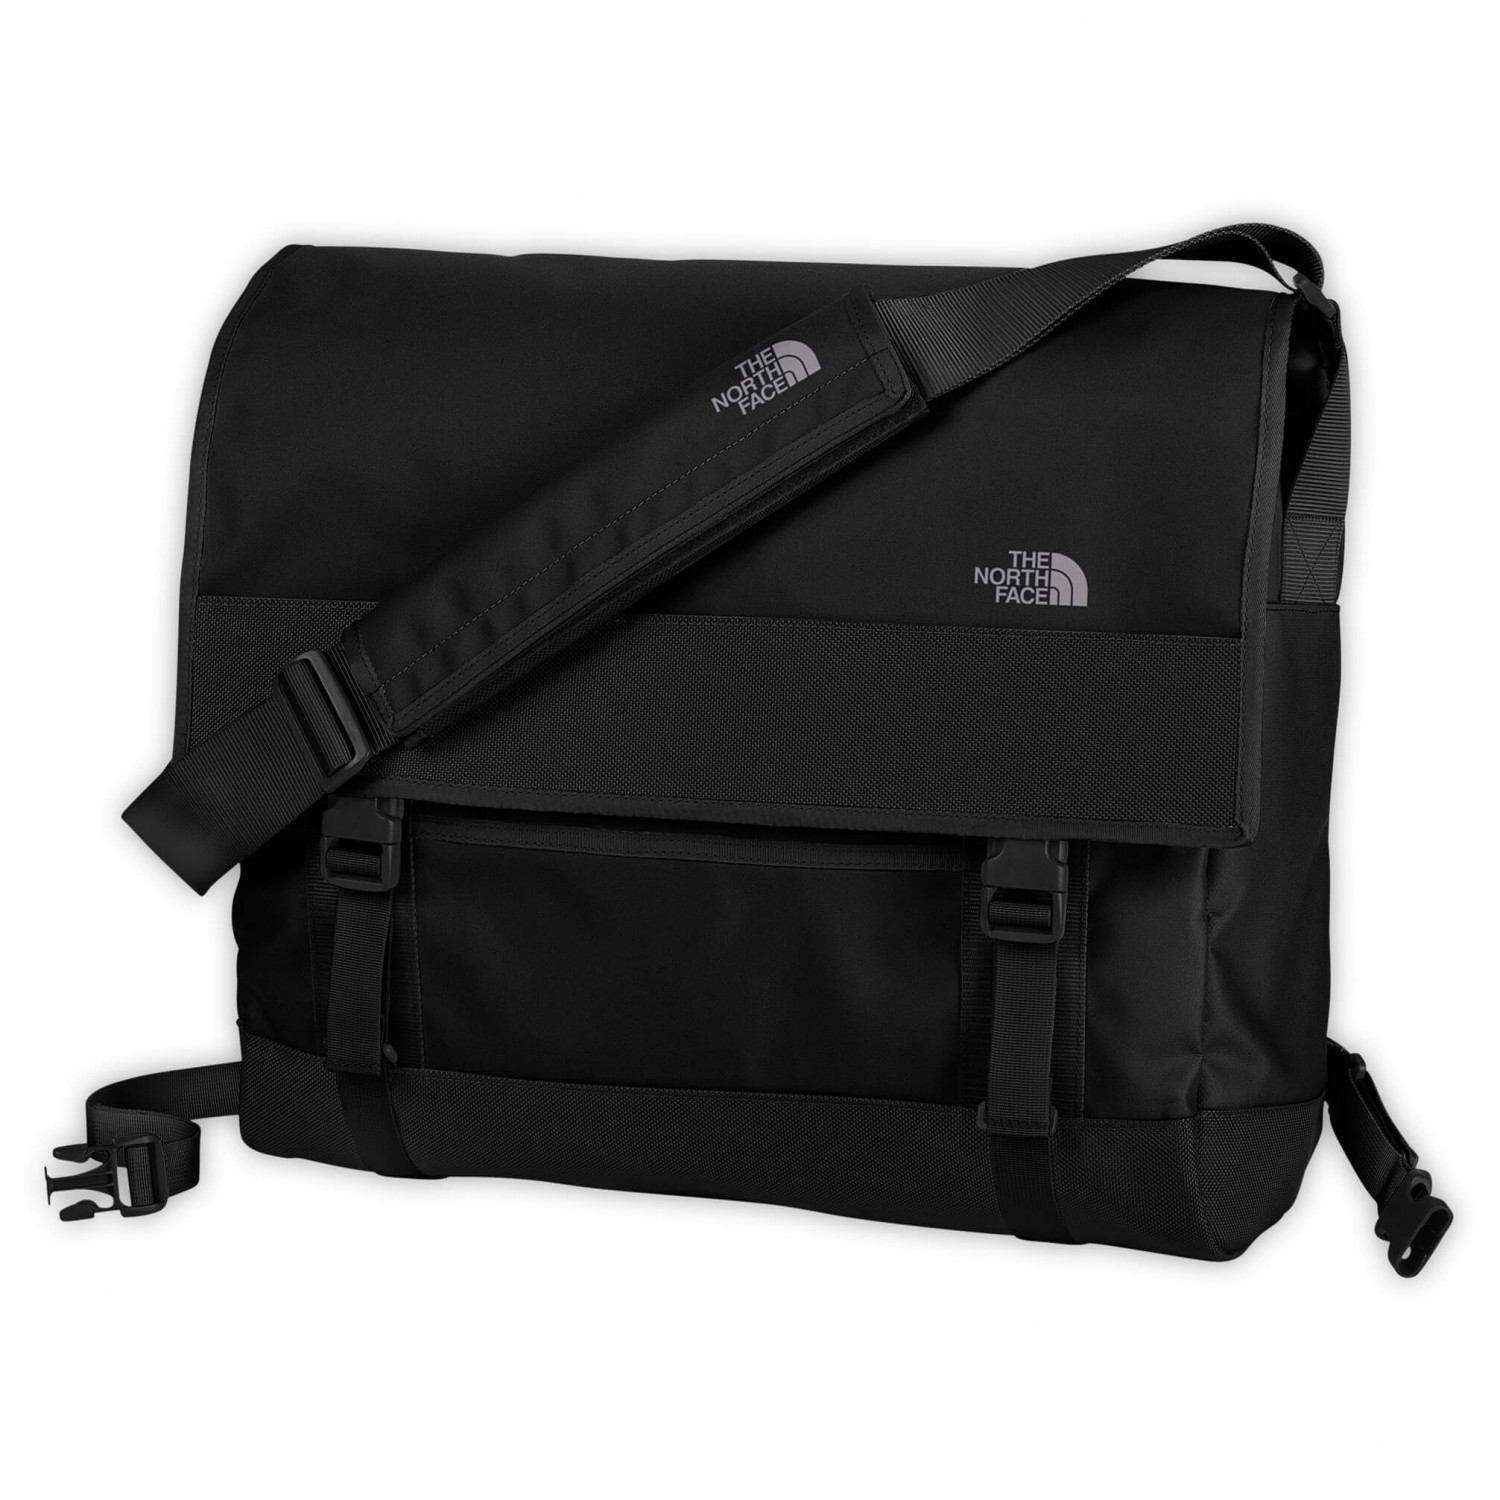 b5c392ed47 The North Face Base Camp Messenger Bag II - Sac à bandoulière ...